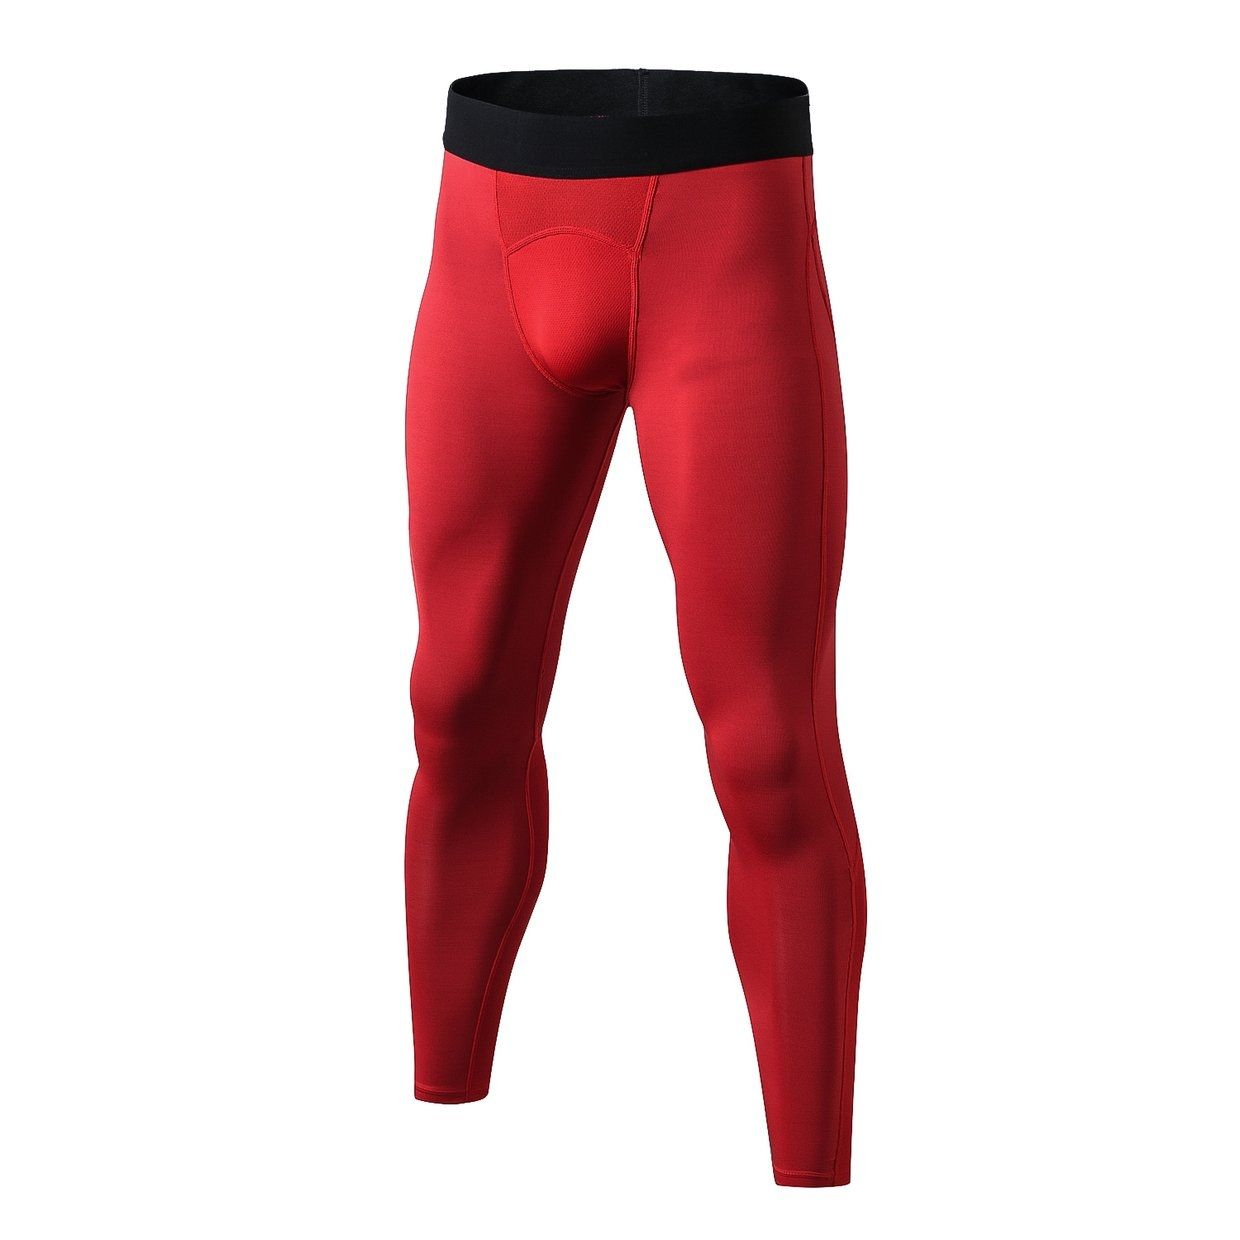 699f672109 Generic Yuerlian Breathable Men Compression Pants Quick Drying ...